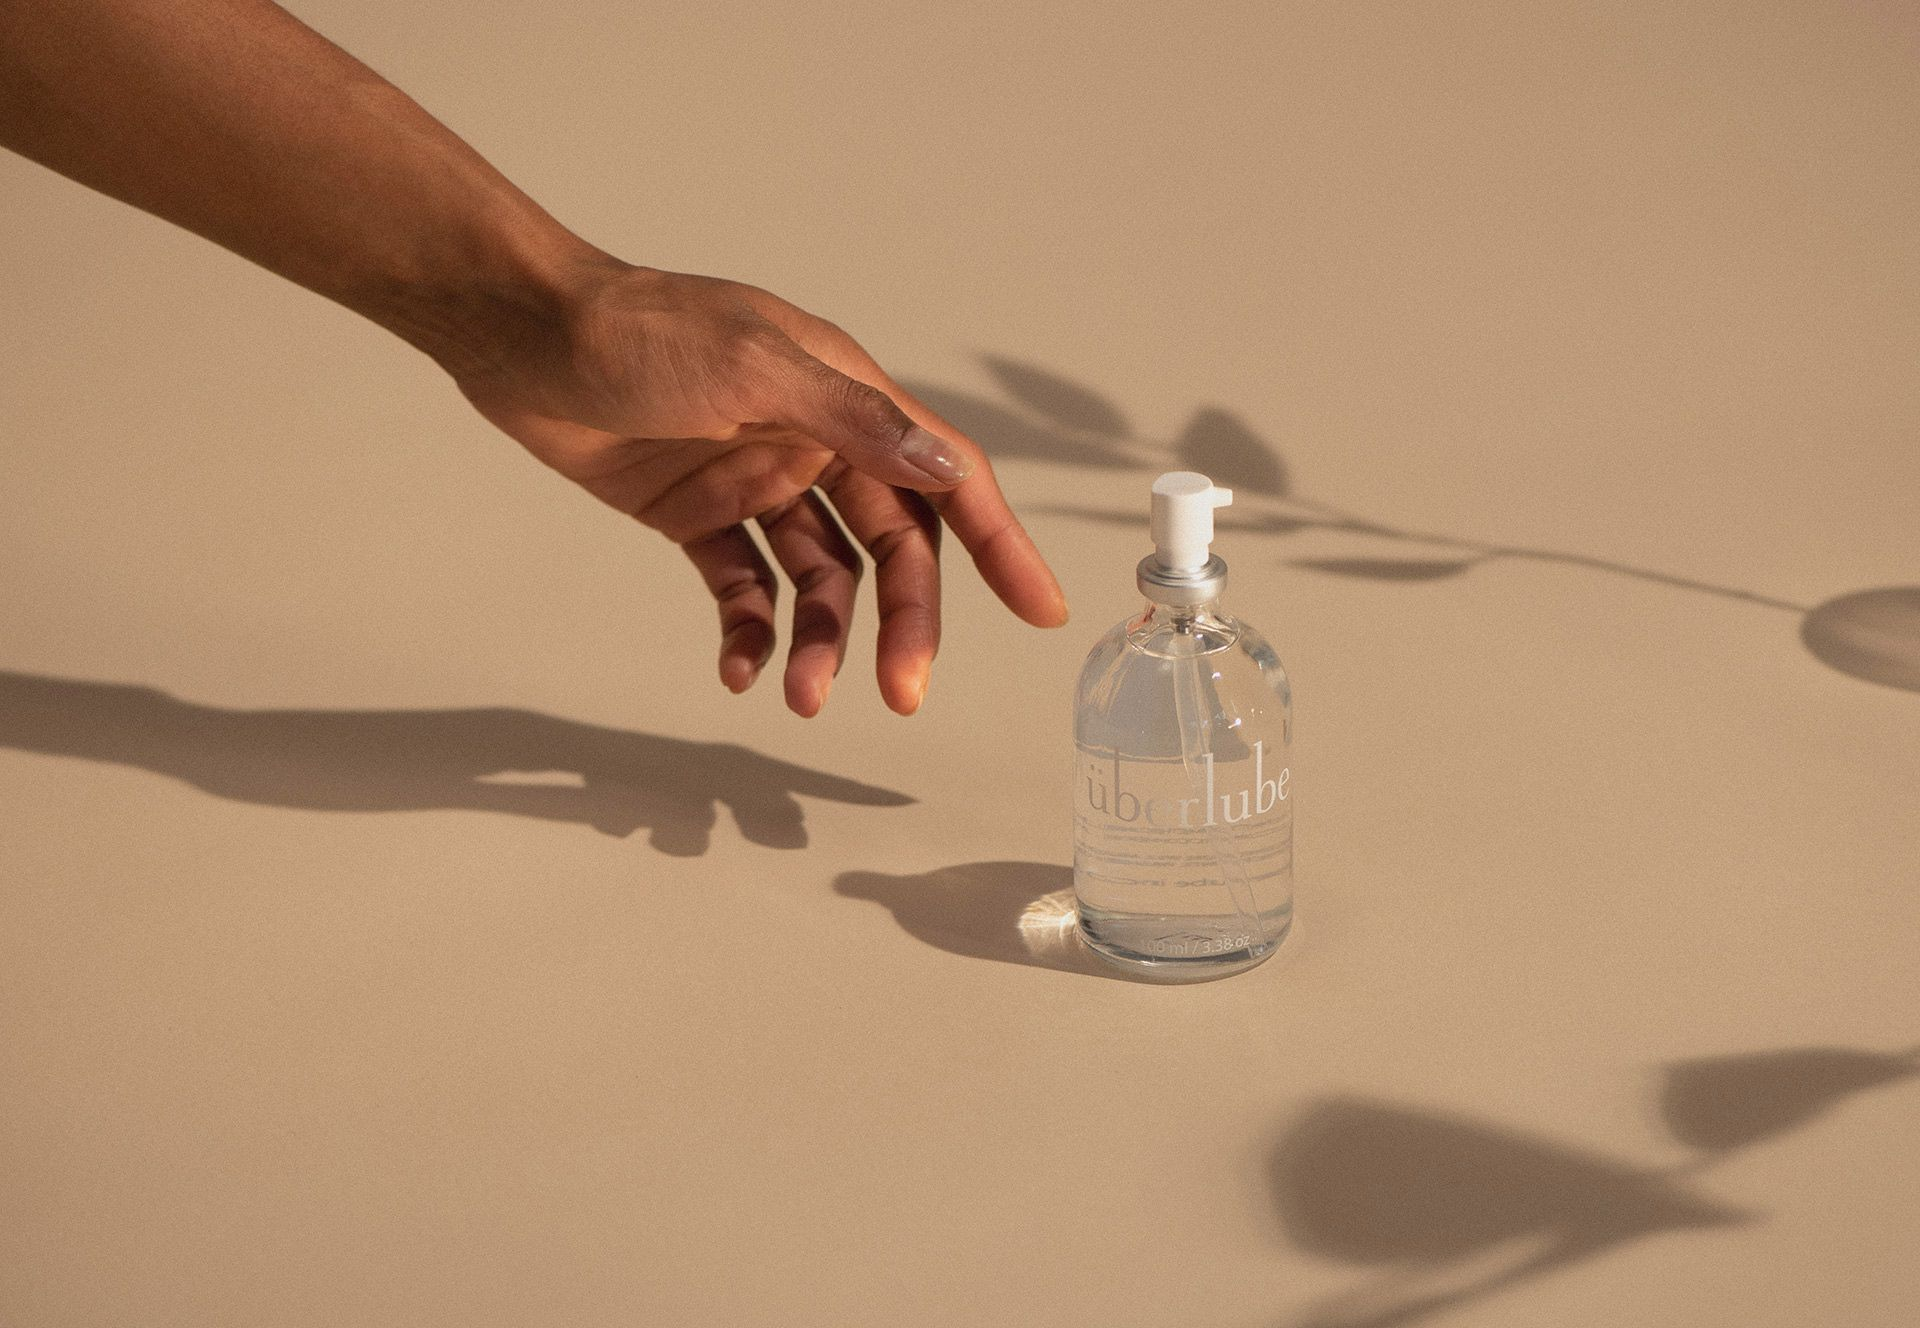 Hand reaching for a clear pump bottle of Uberlube sex lubricant.